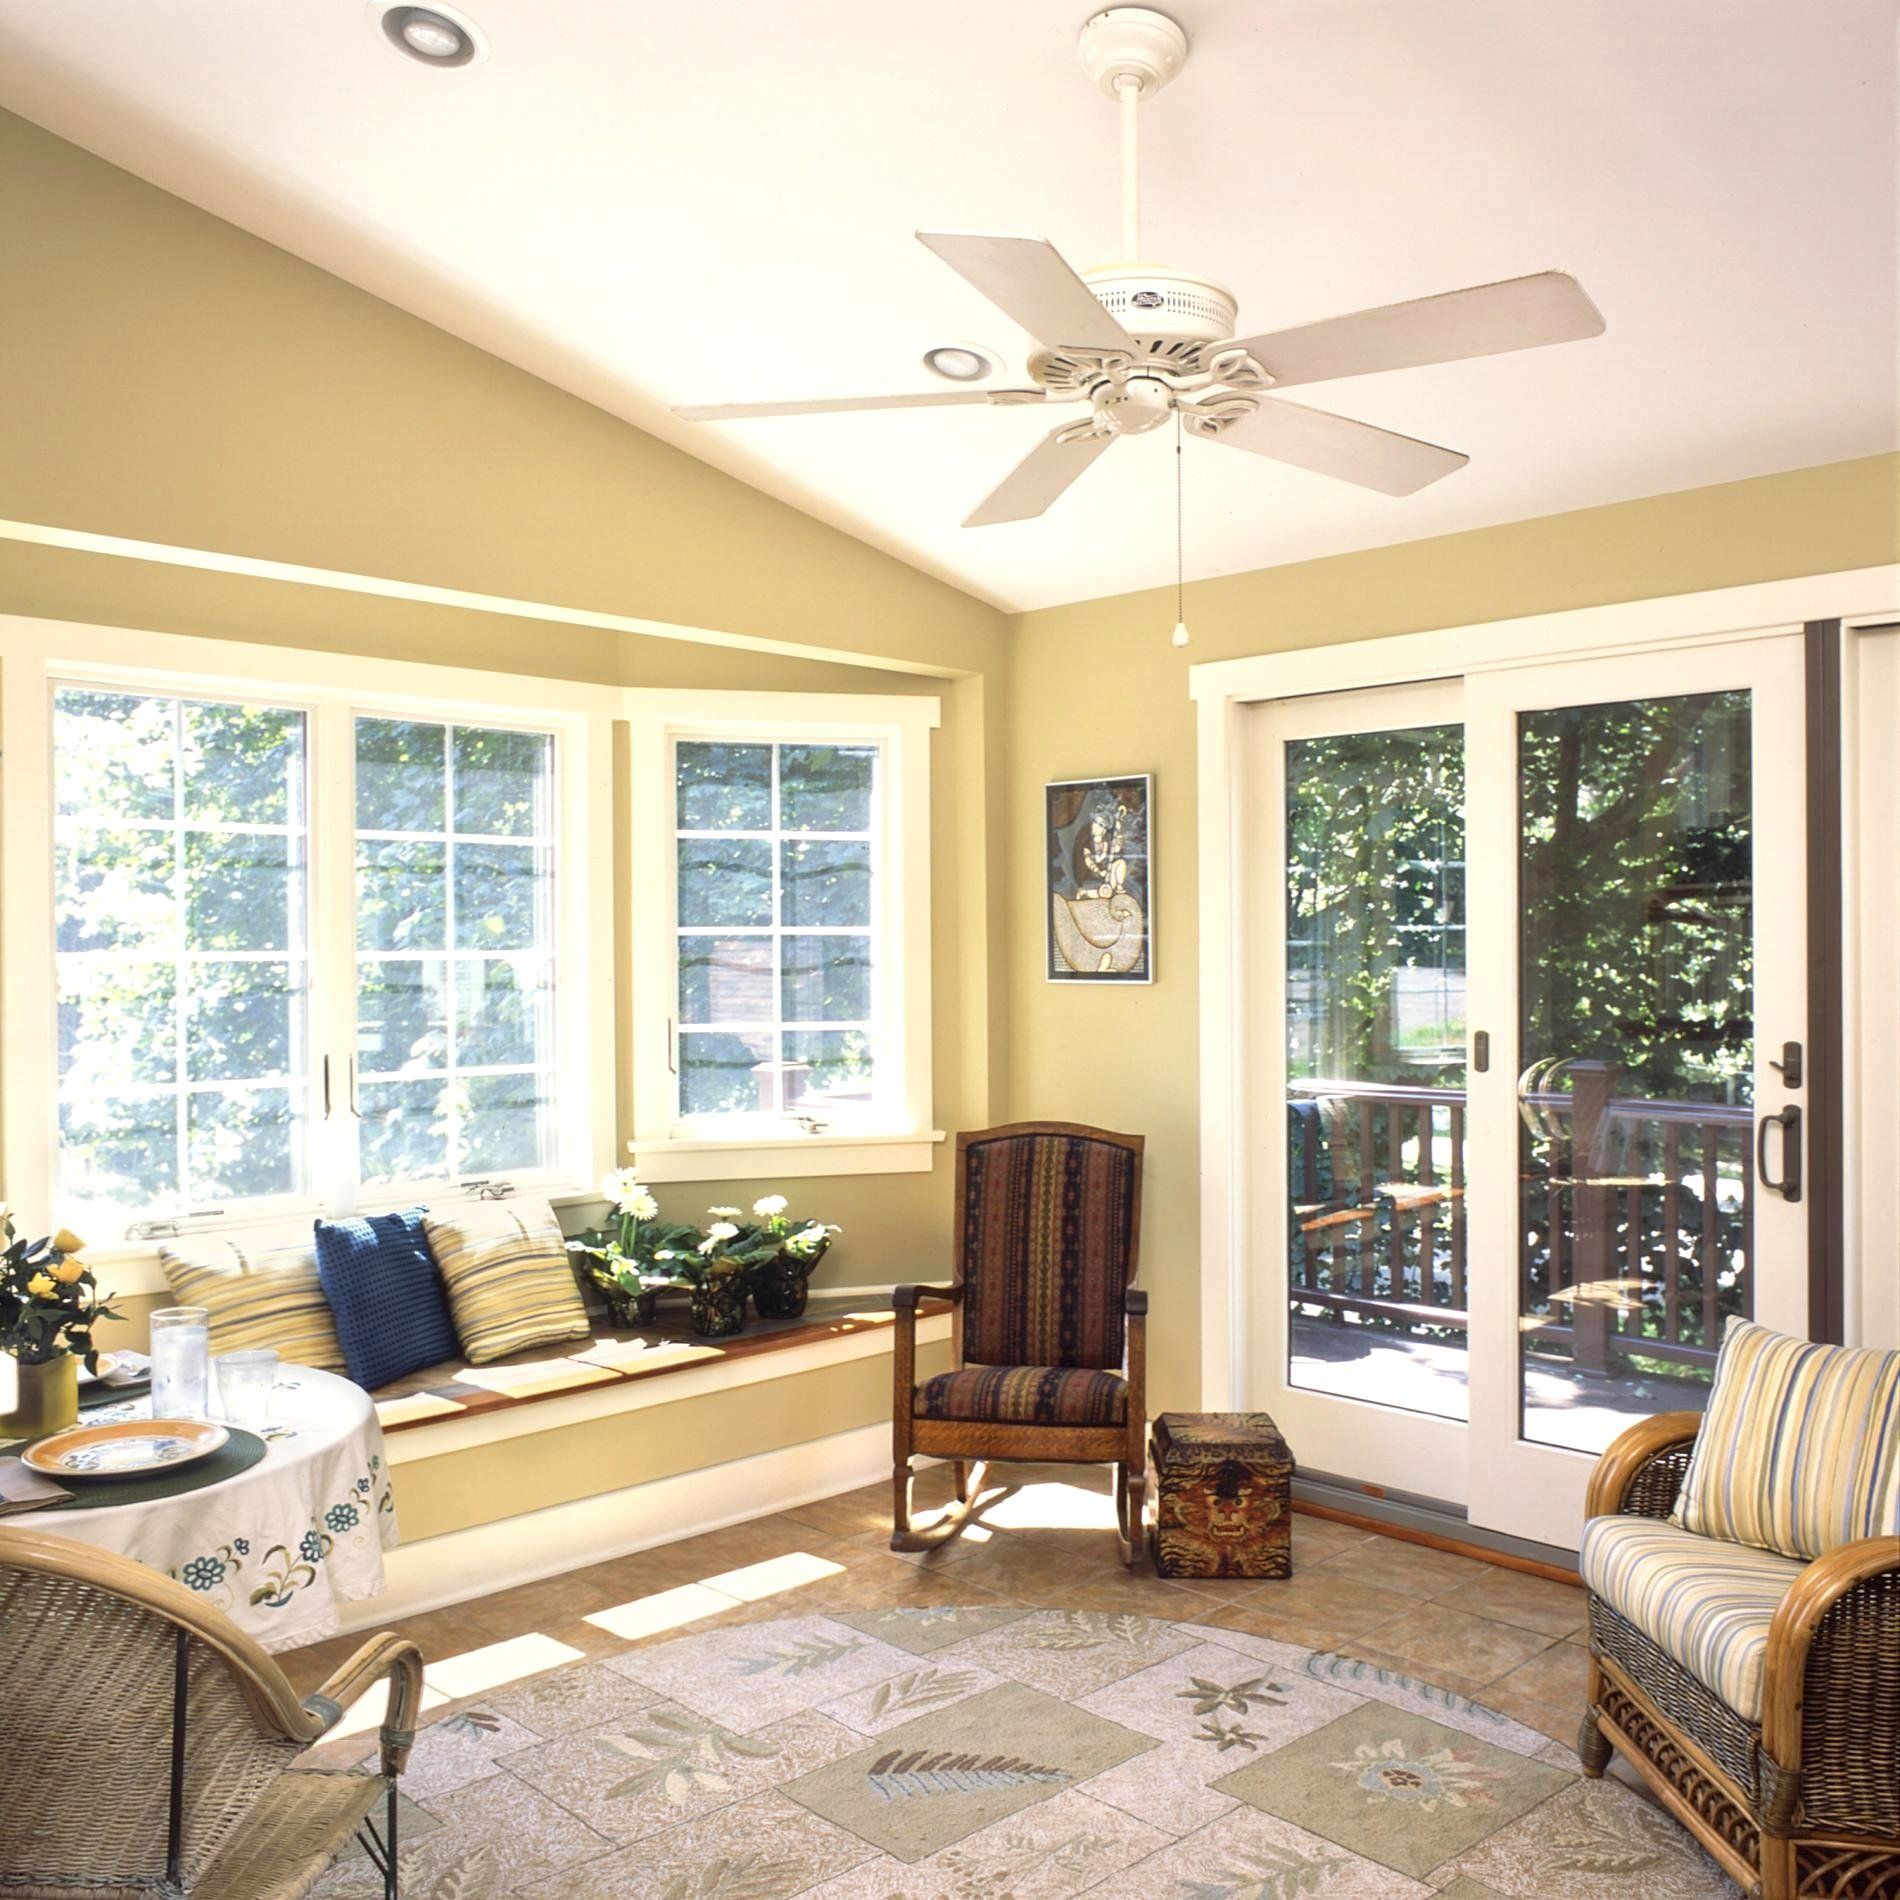 Comfy sunroom interior nuance with gold wall paint color Solarium design